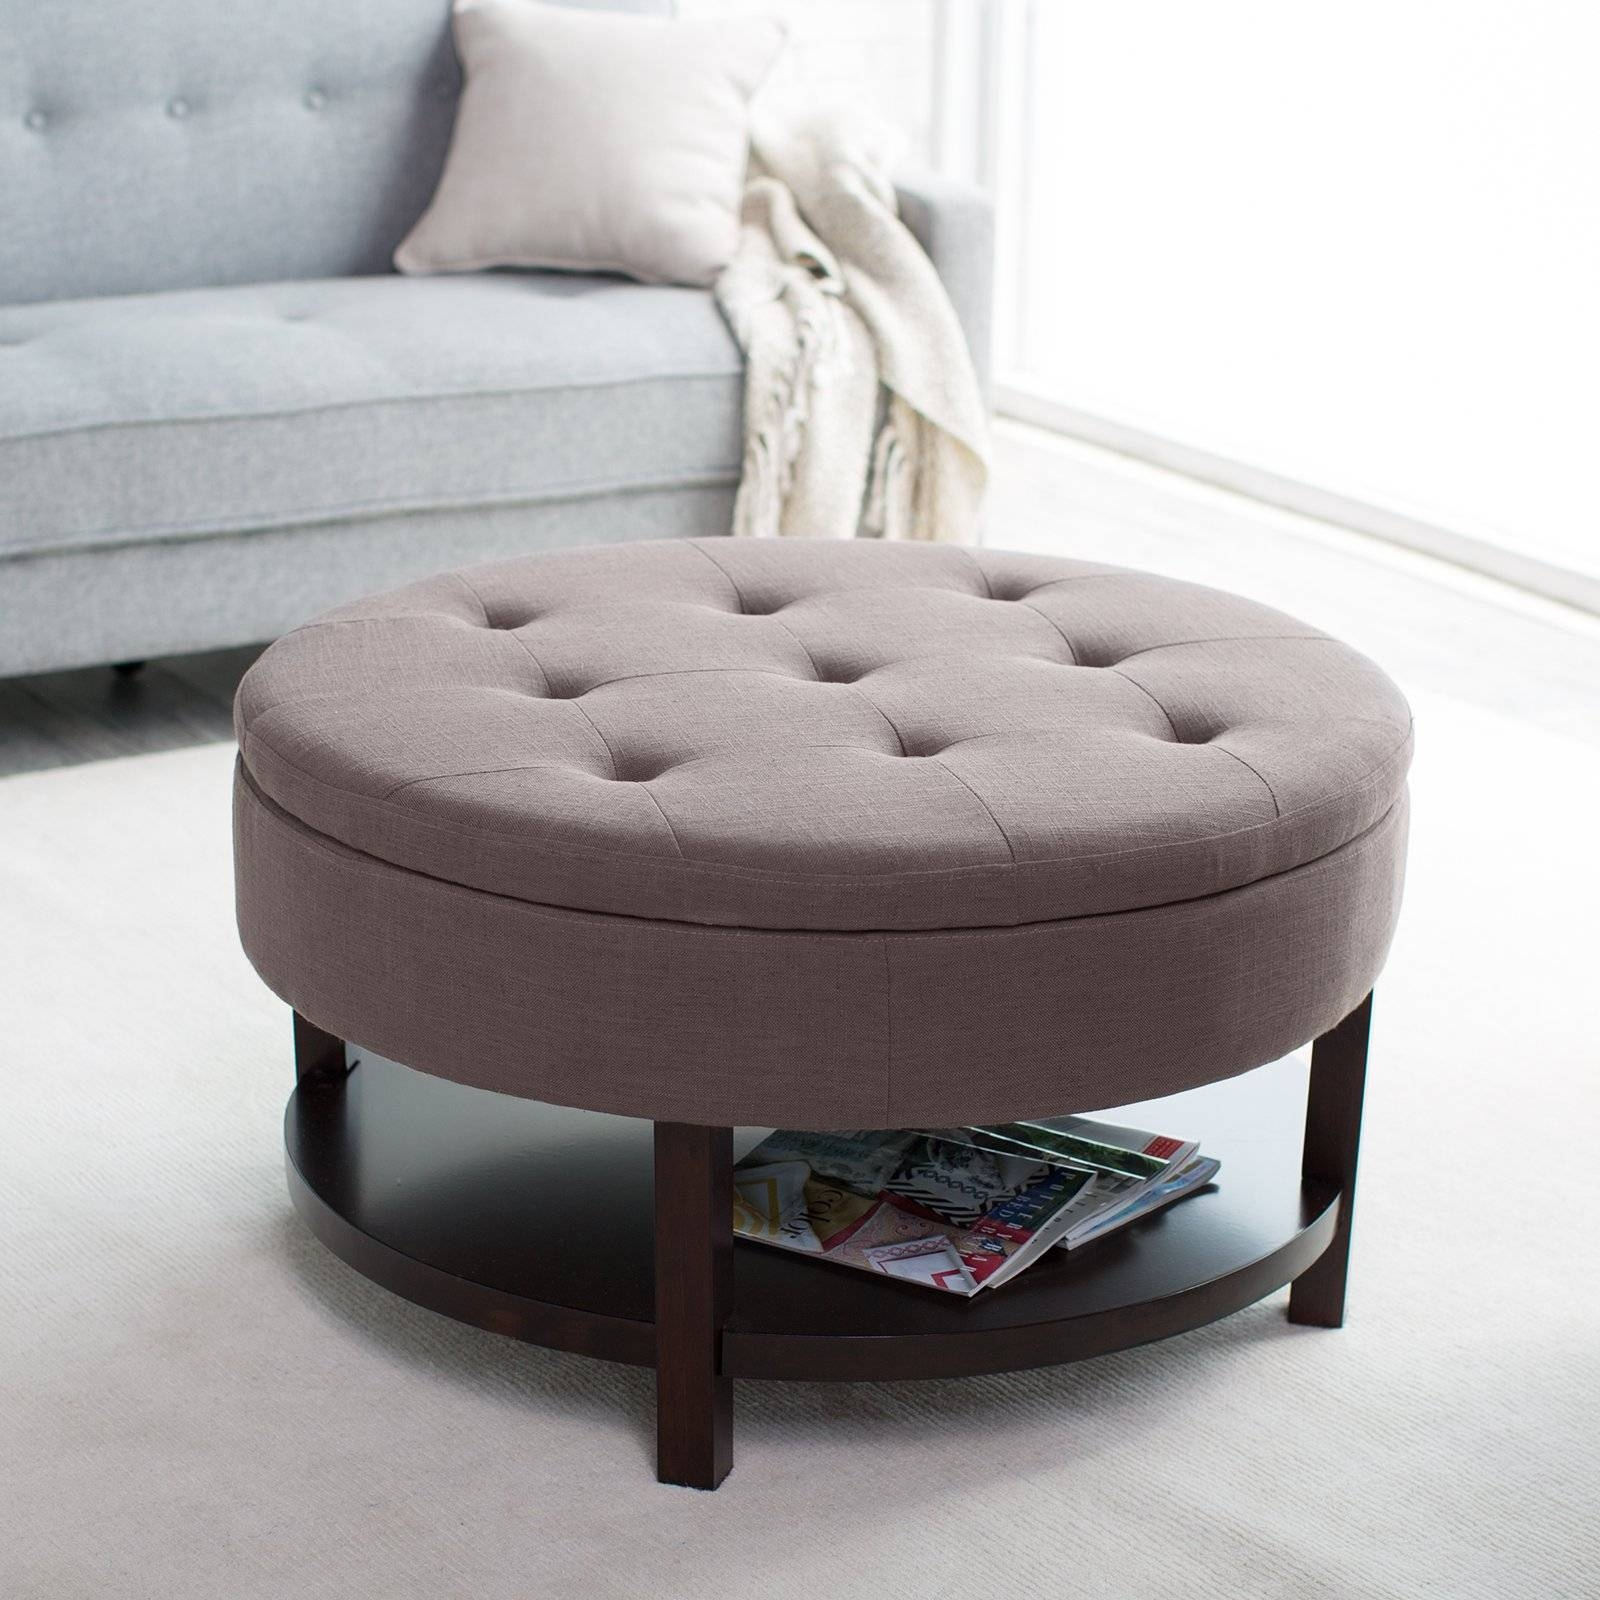 Cool Round Coffee Table With Storage Black White Color Modern intended for Round Storage Coffee Tables (Image 12 of 30)